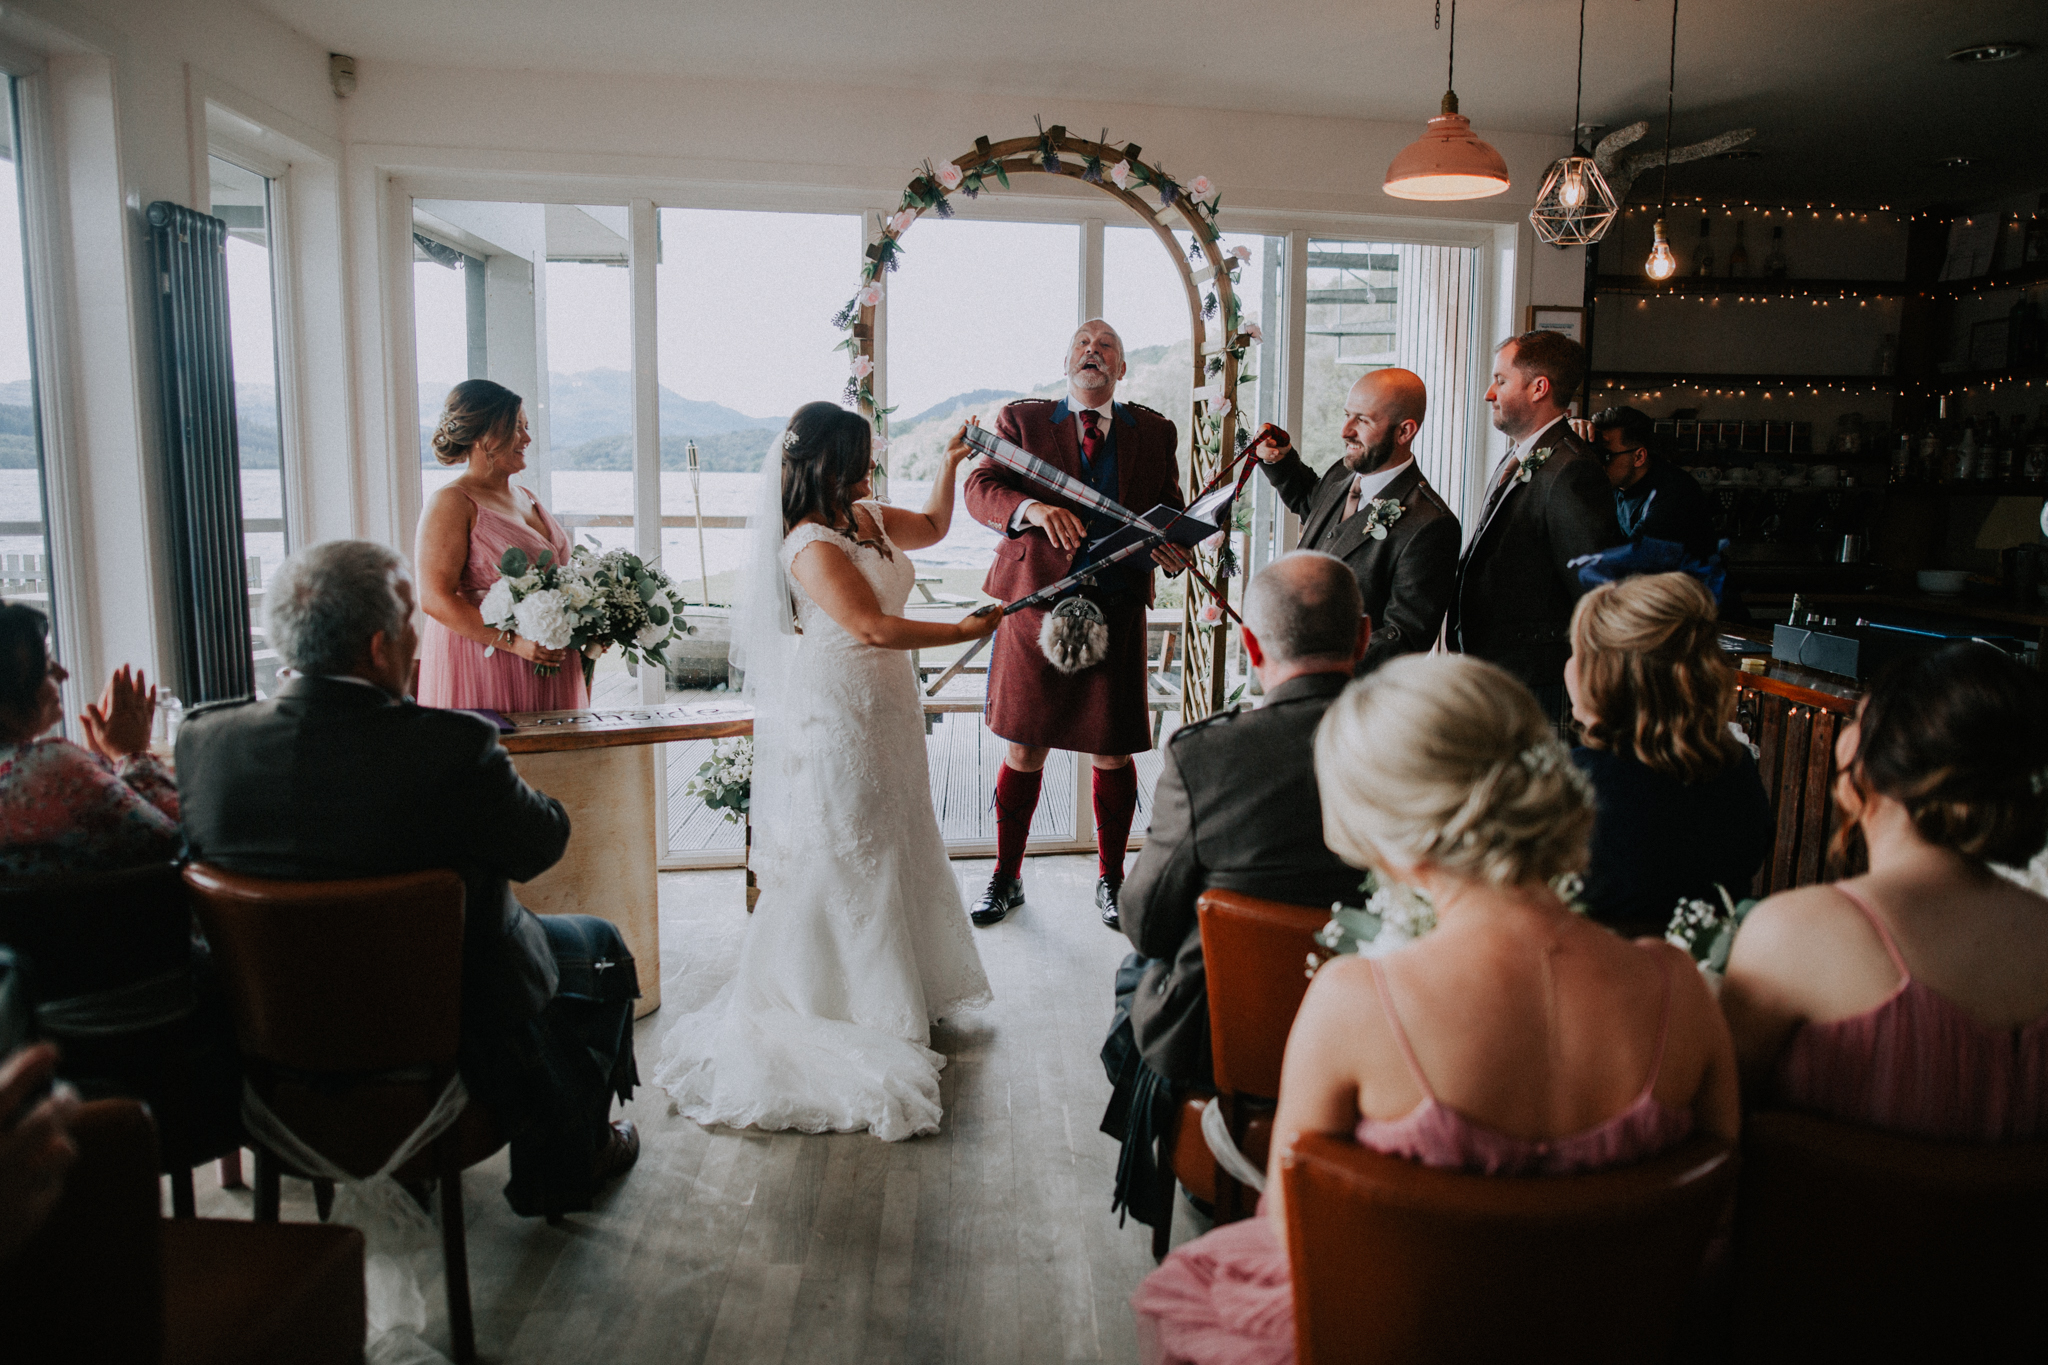 Wedding photographer t the Venachar Lochside in Callander, Scotland